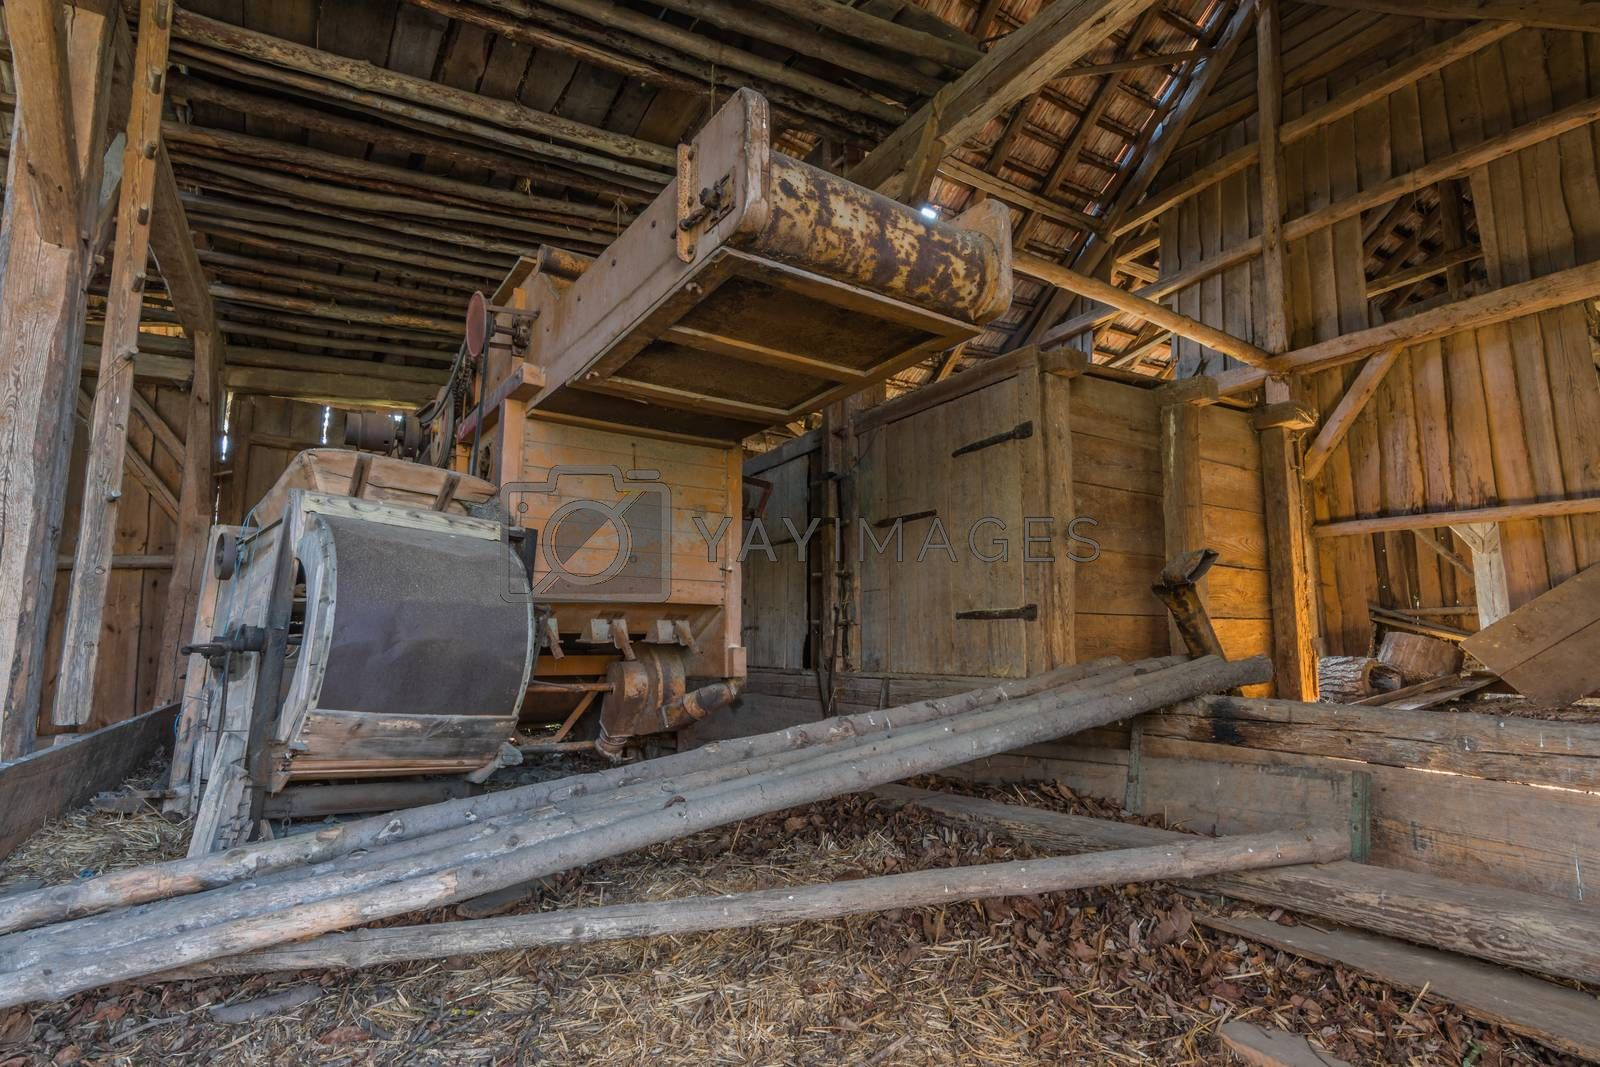 Old threshing machine in an abandoned house